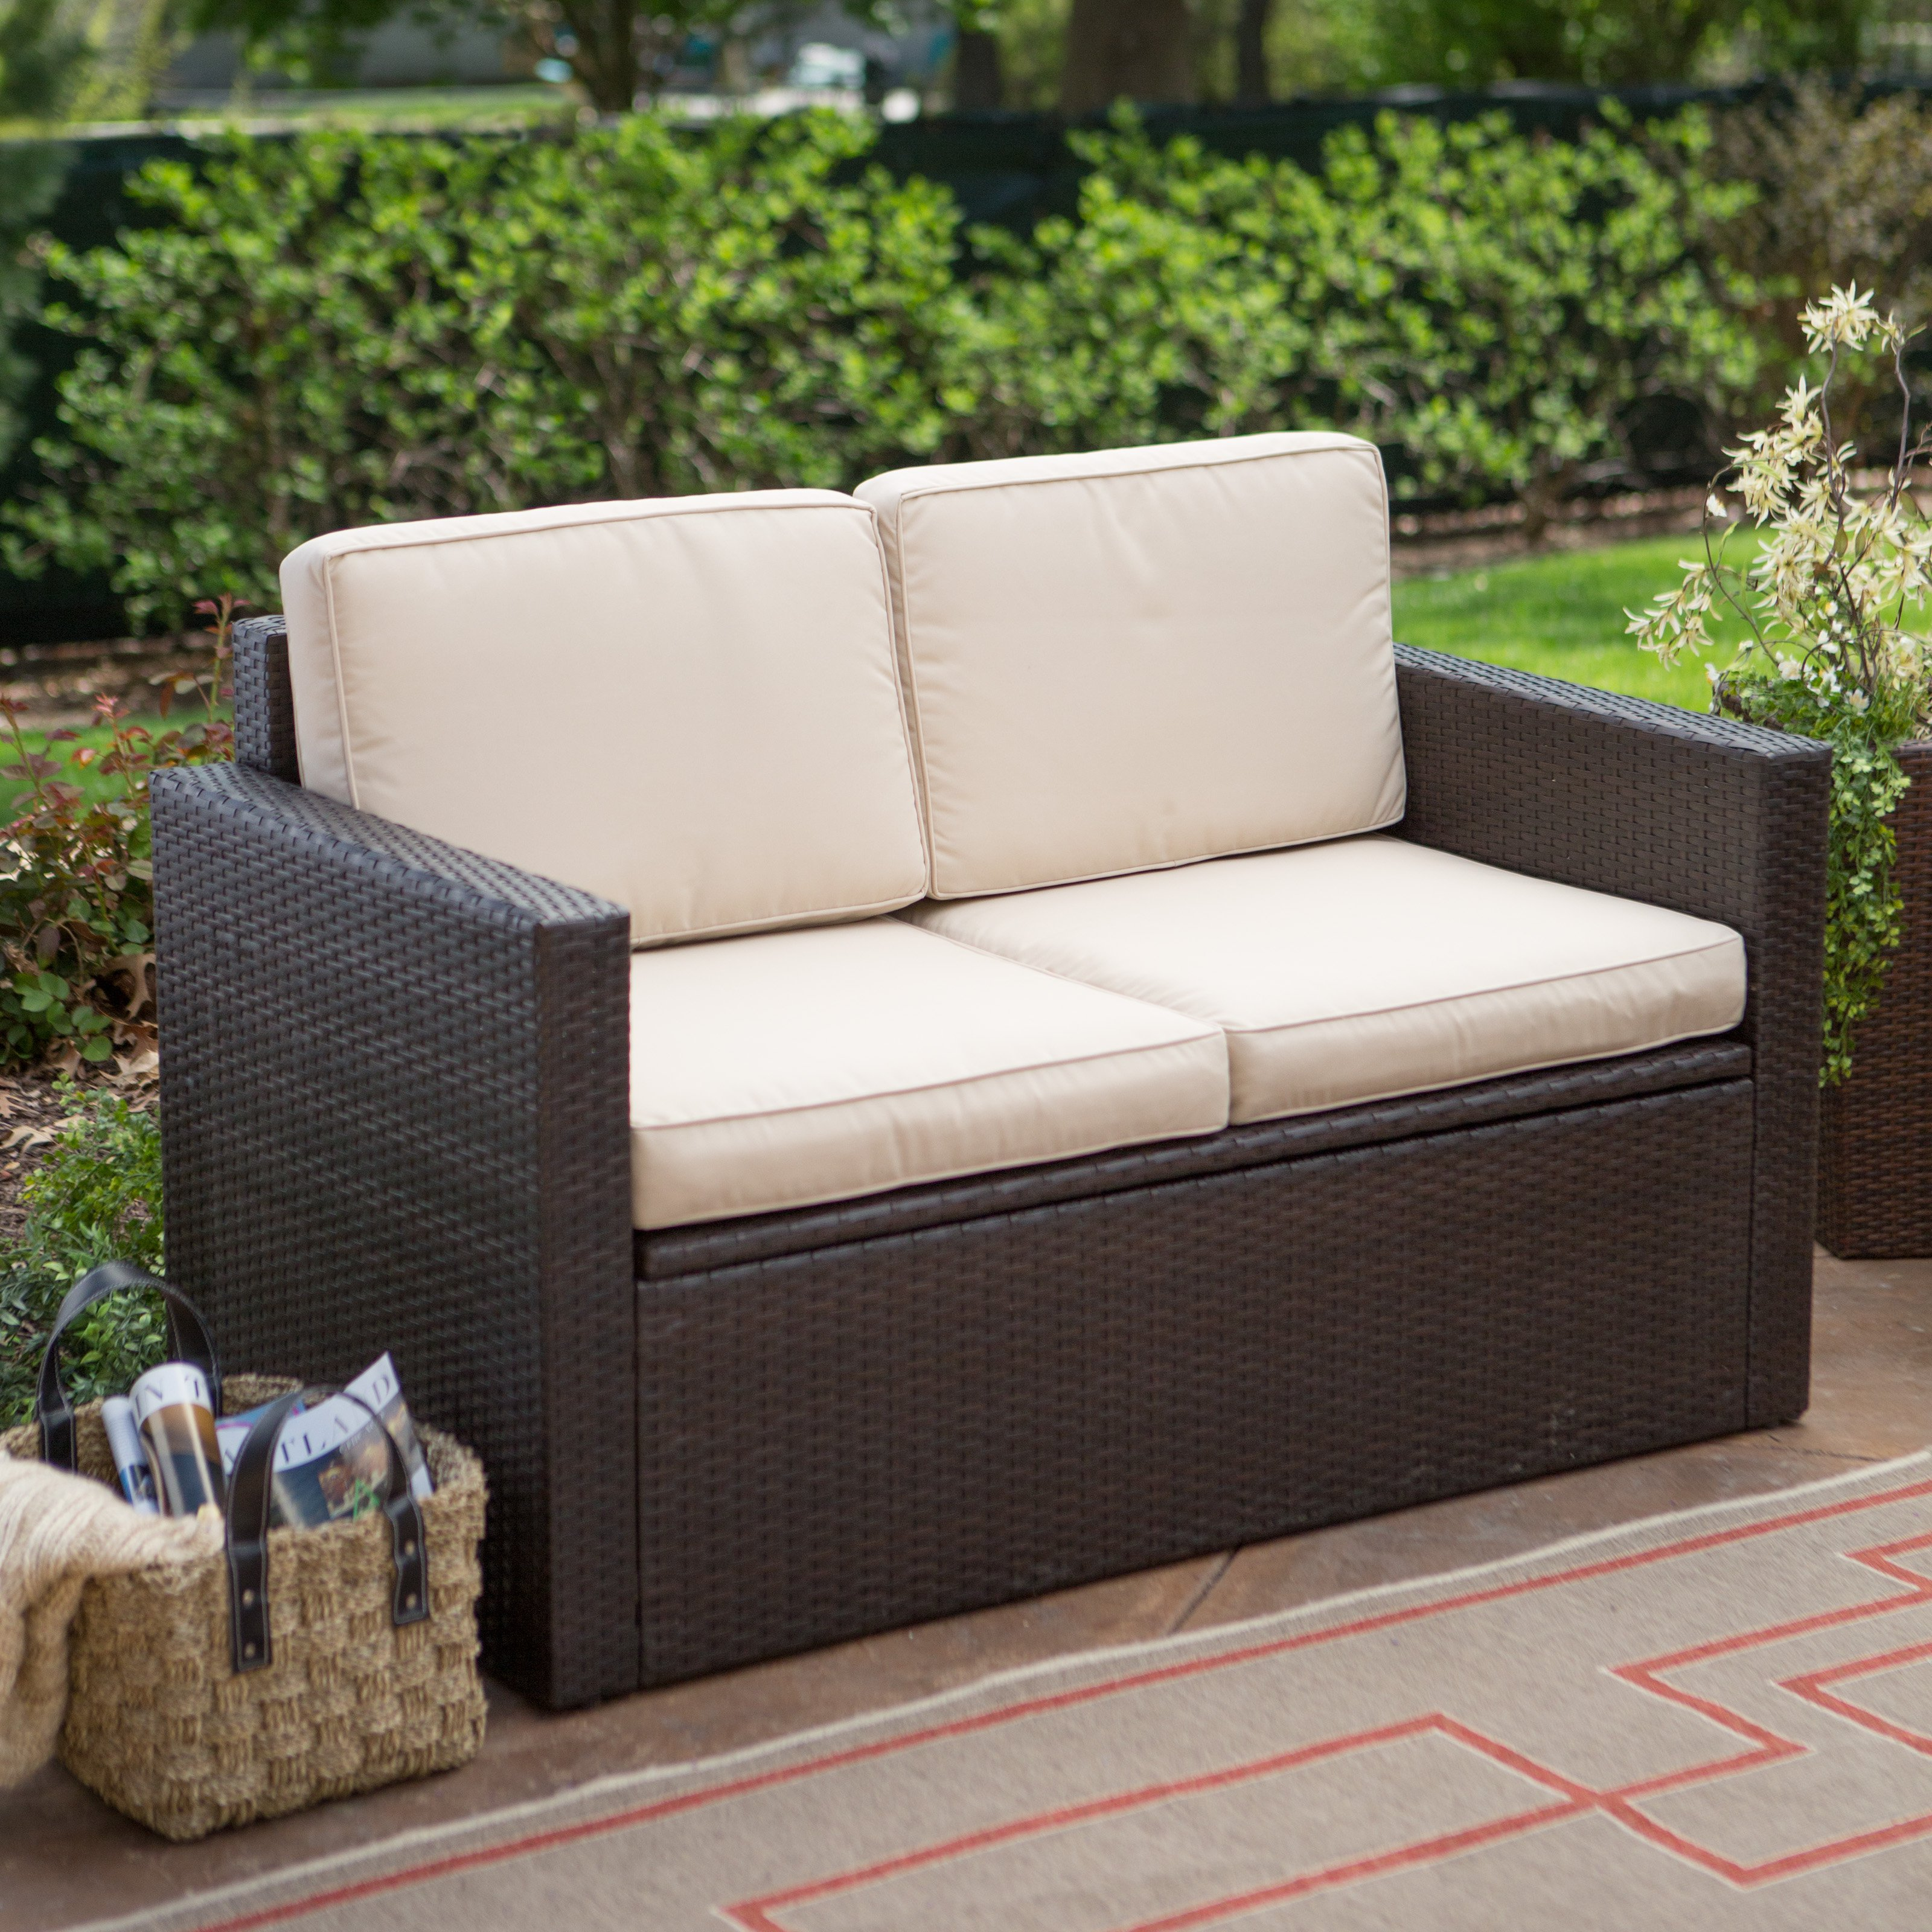 outdoor loveseat coral coast berea outdoor wicker storage loveseat with cushions | hayneedle XOTTXUM